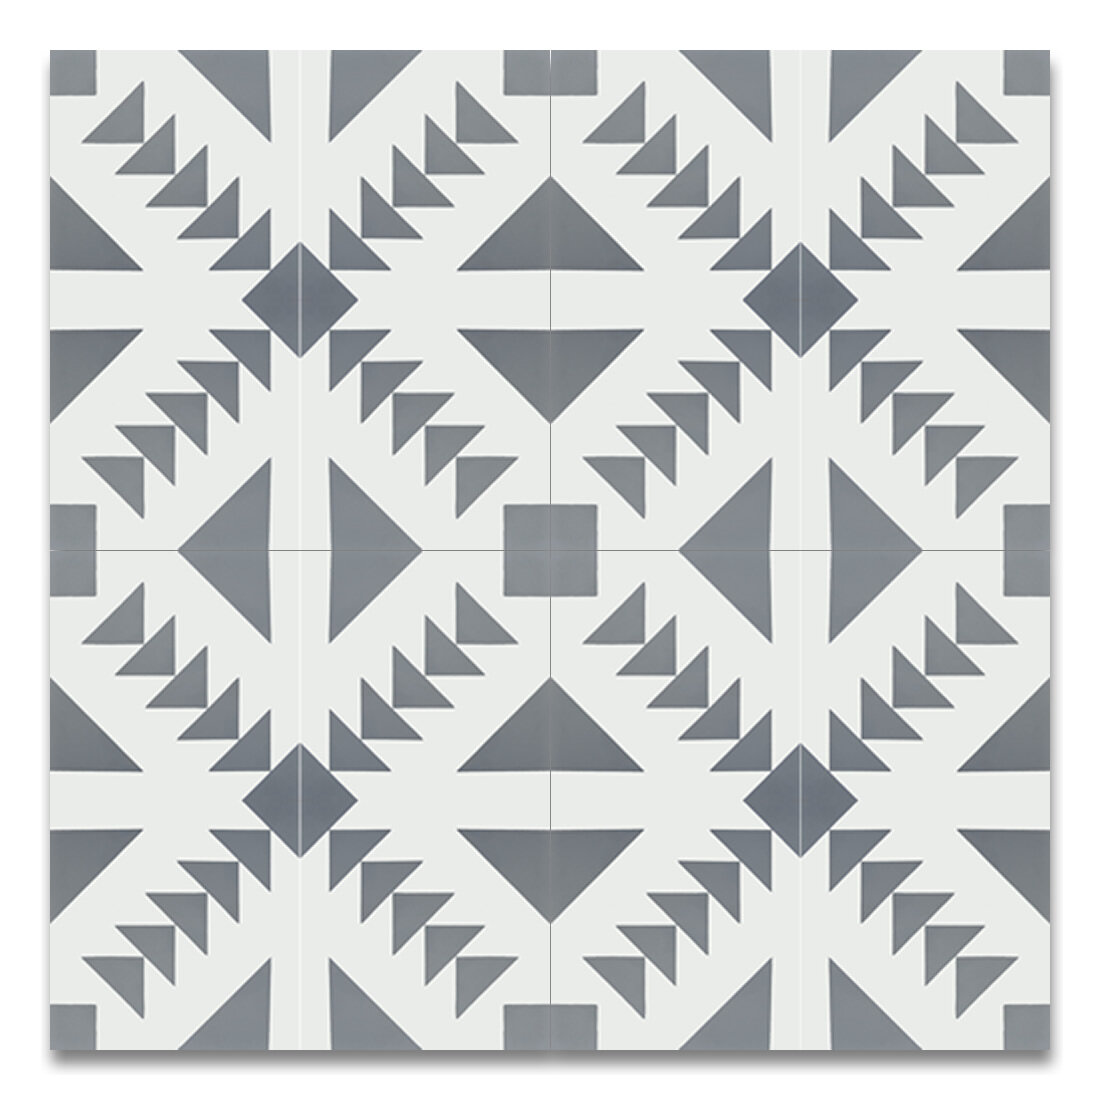 Moroccan mosaic tile house tadla 8 x 8 cement patterned tile in gray white wayfair